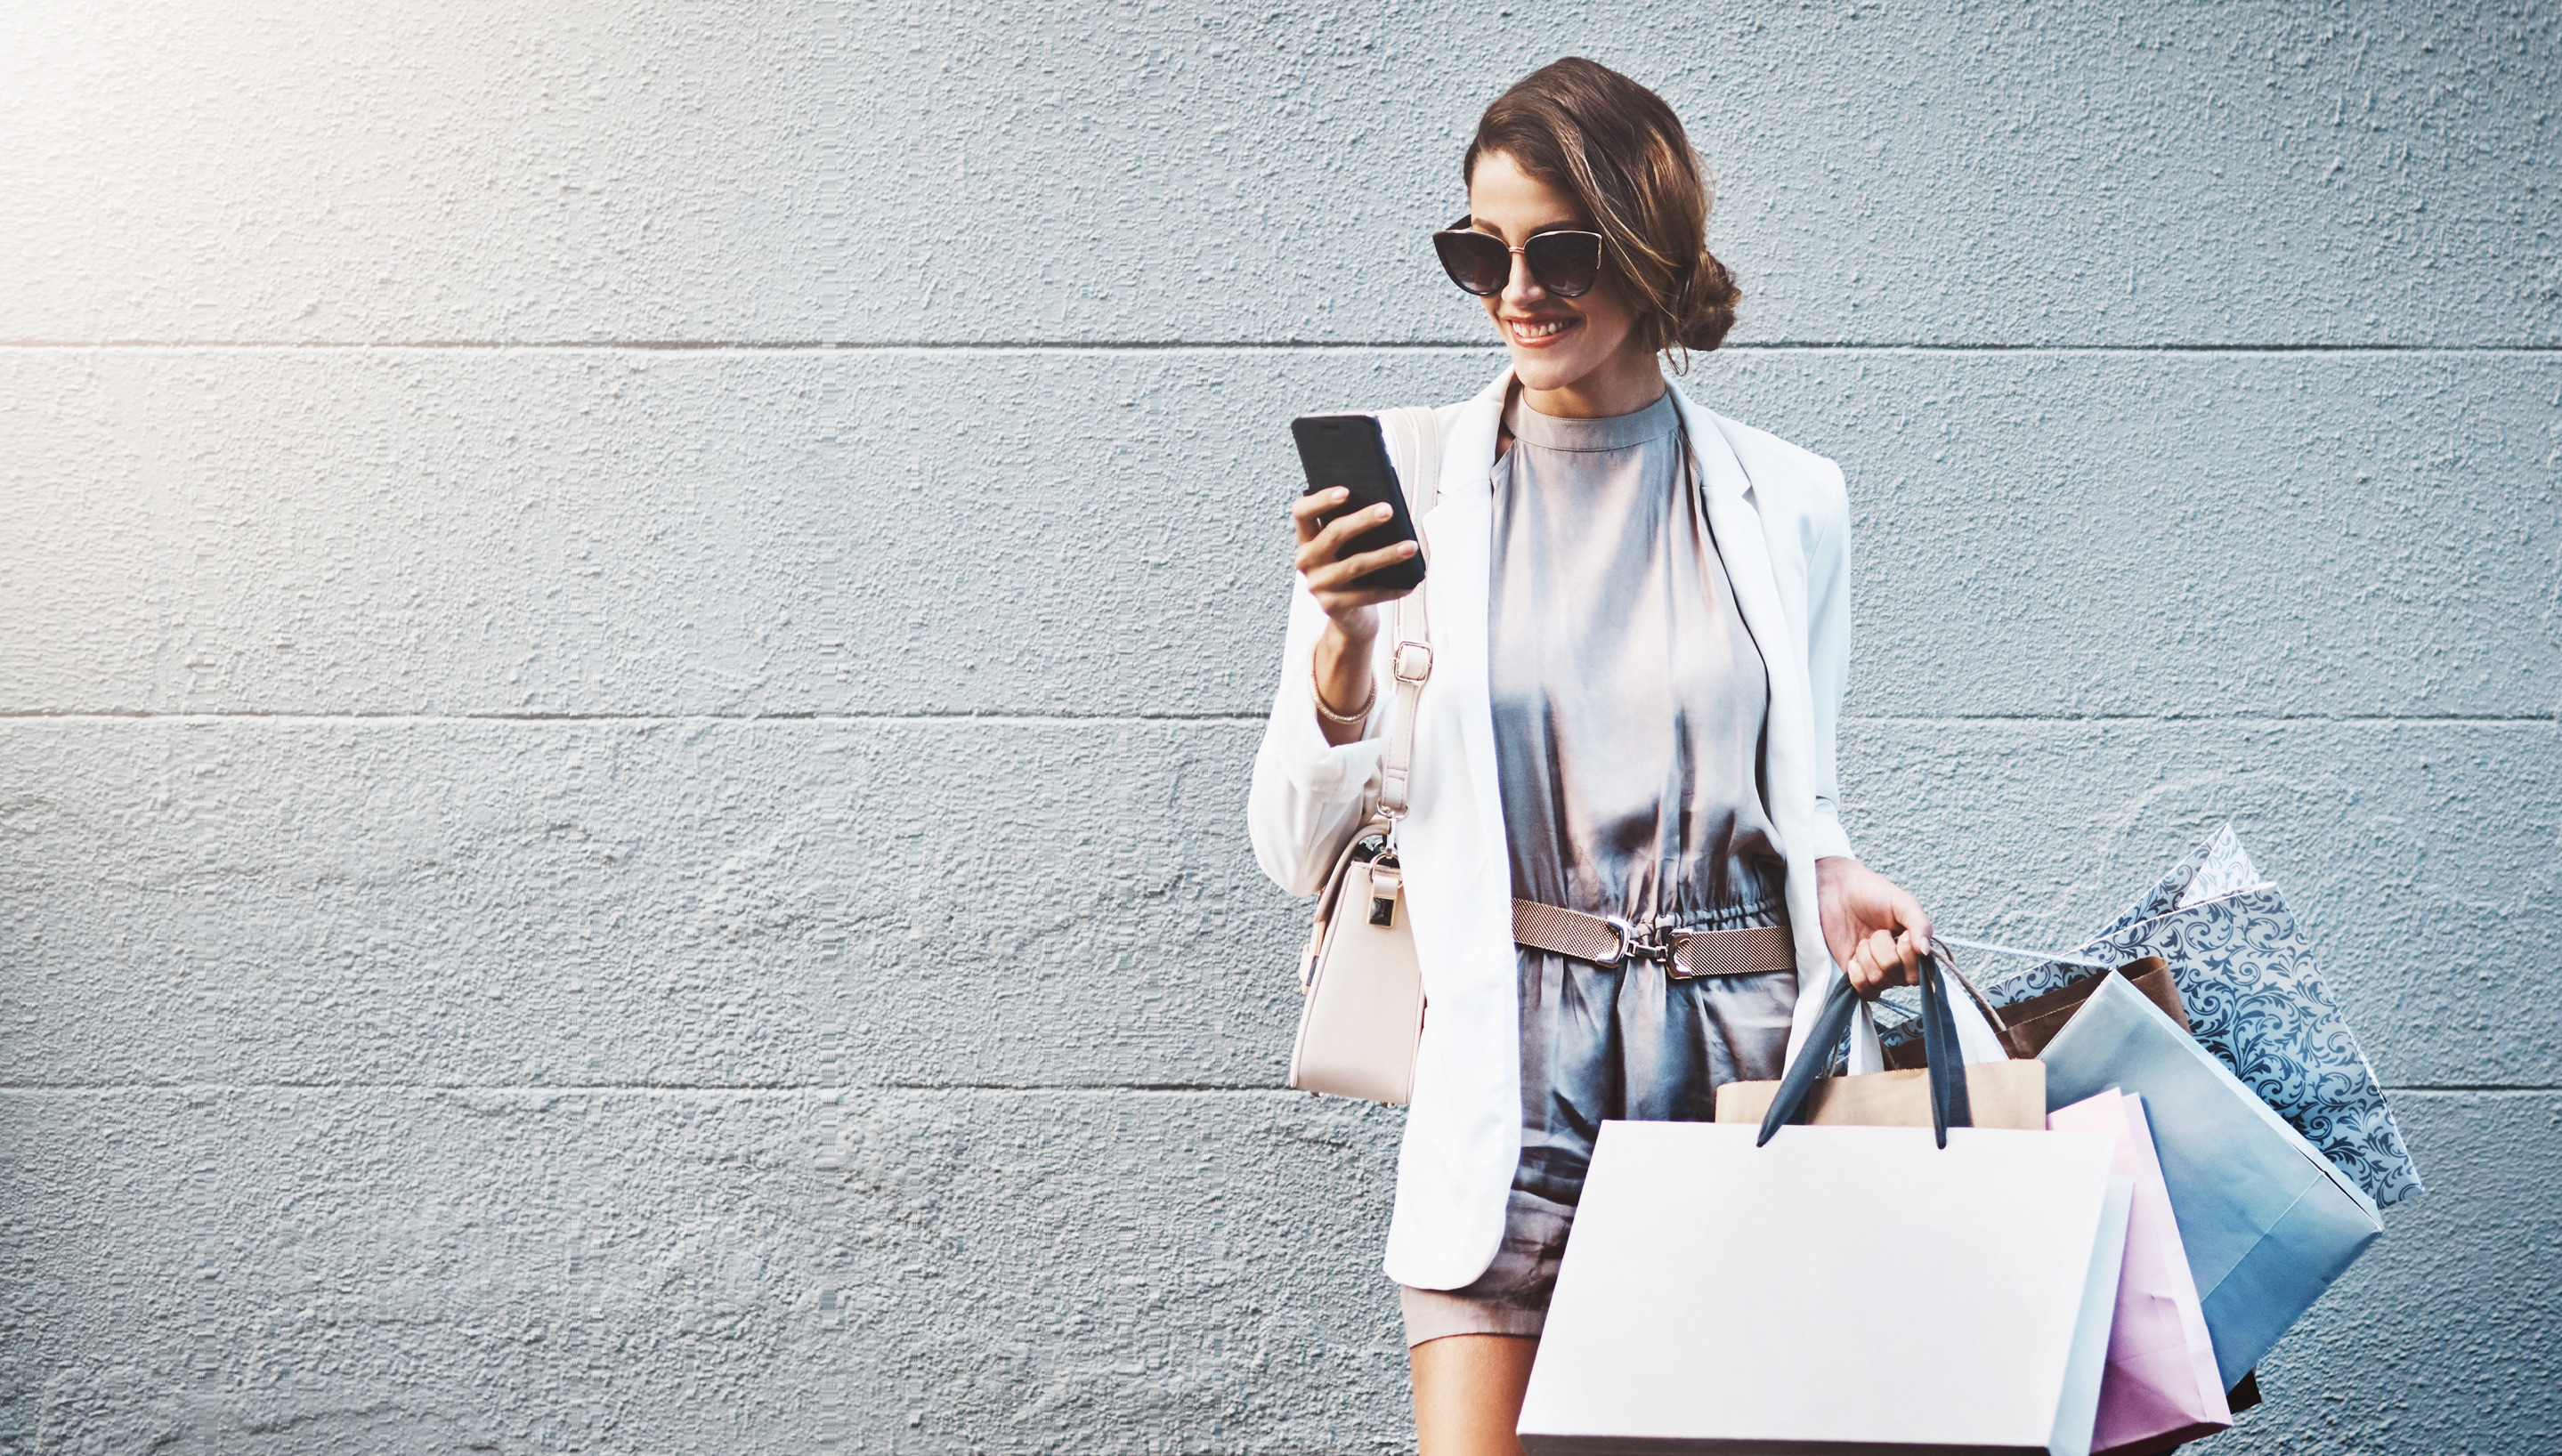 Woman shopping both digitally and traditionally at the store